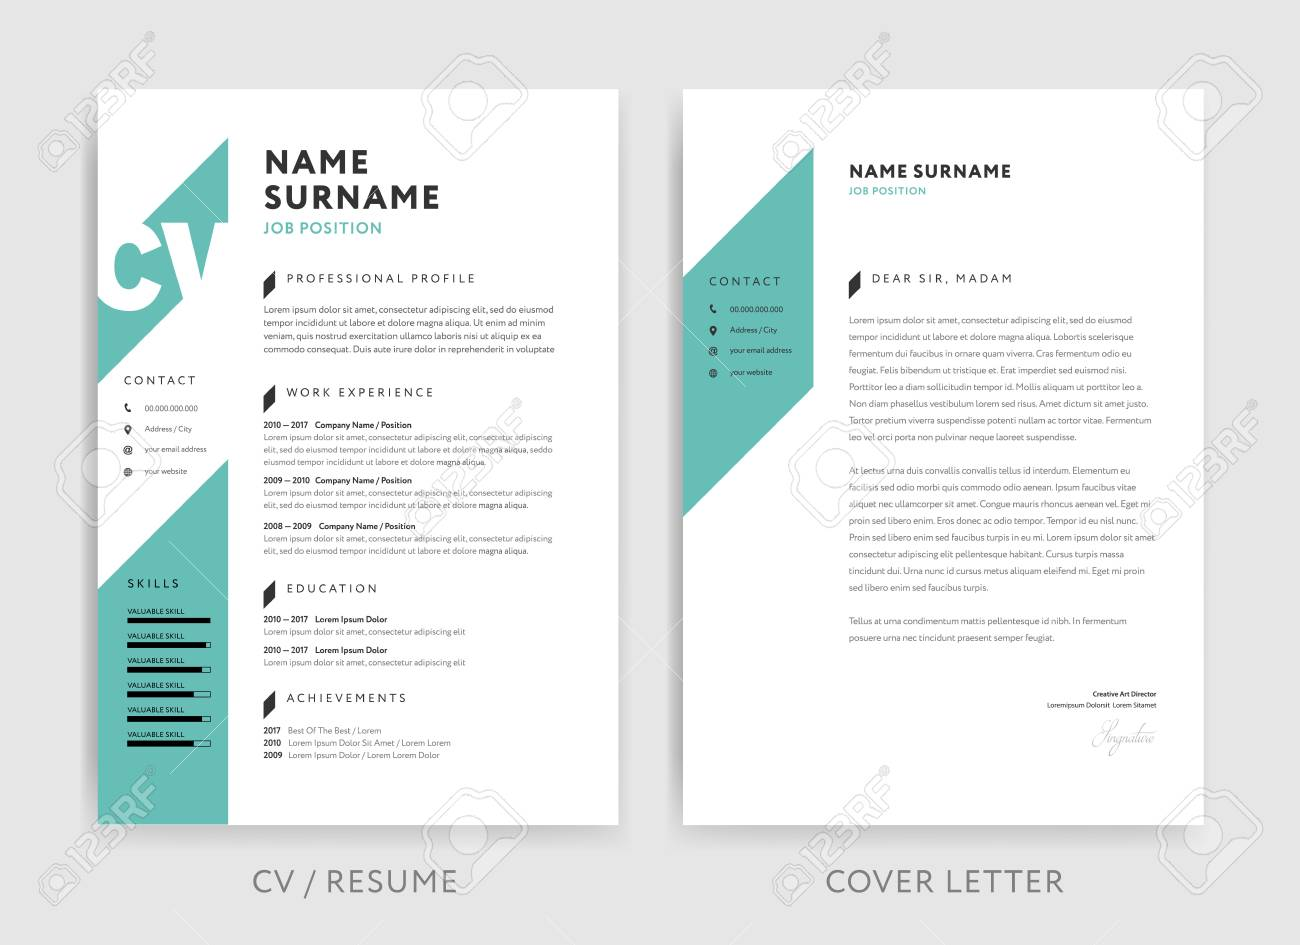 Creative Cv Resume Template With Teal Green Background Royalty Free Cliparts Vectors And Stock Illustration Image 97283391